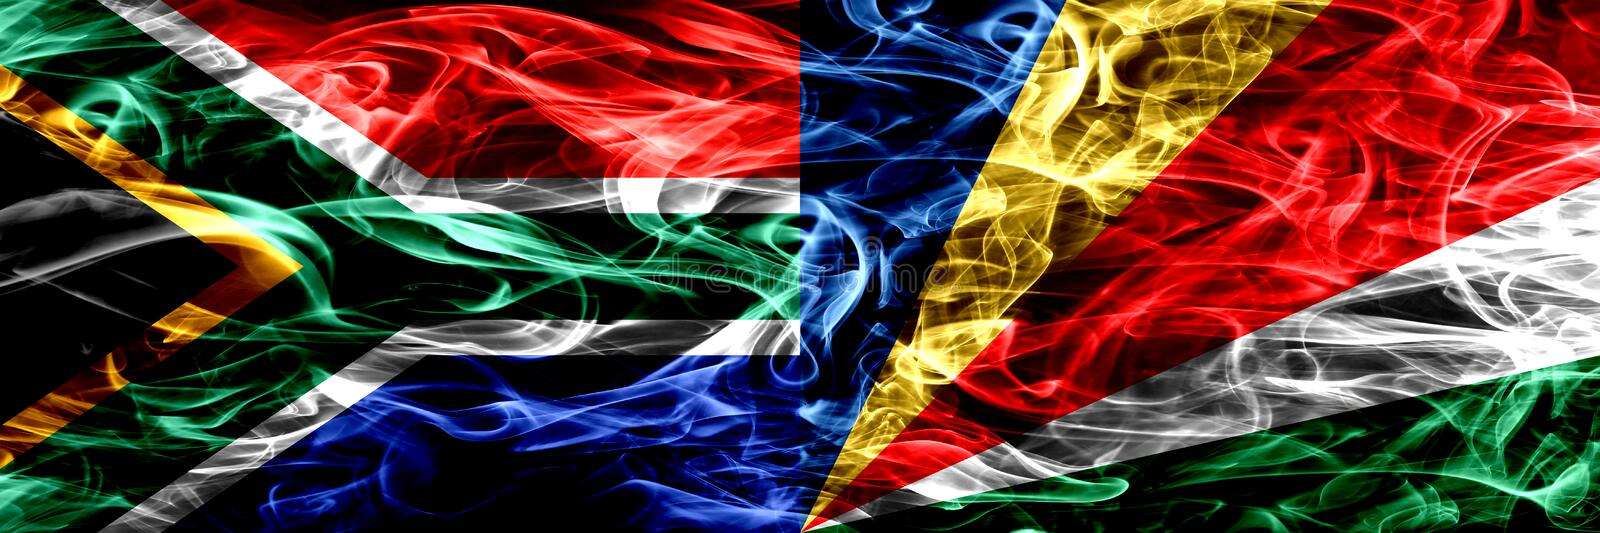 South Africa vs Seychelles, Seychelloise smoke flags placed side by side. Concept and idea flags mix. vector illustration